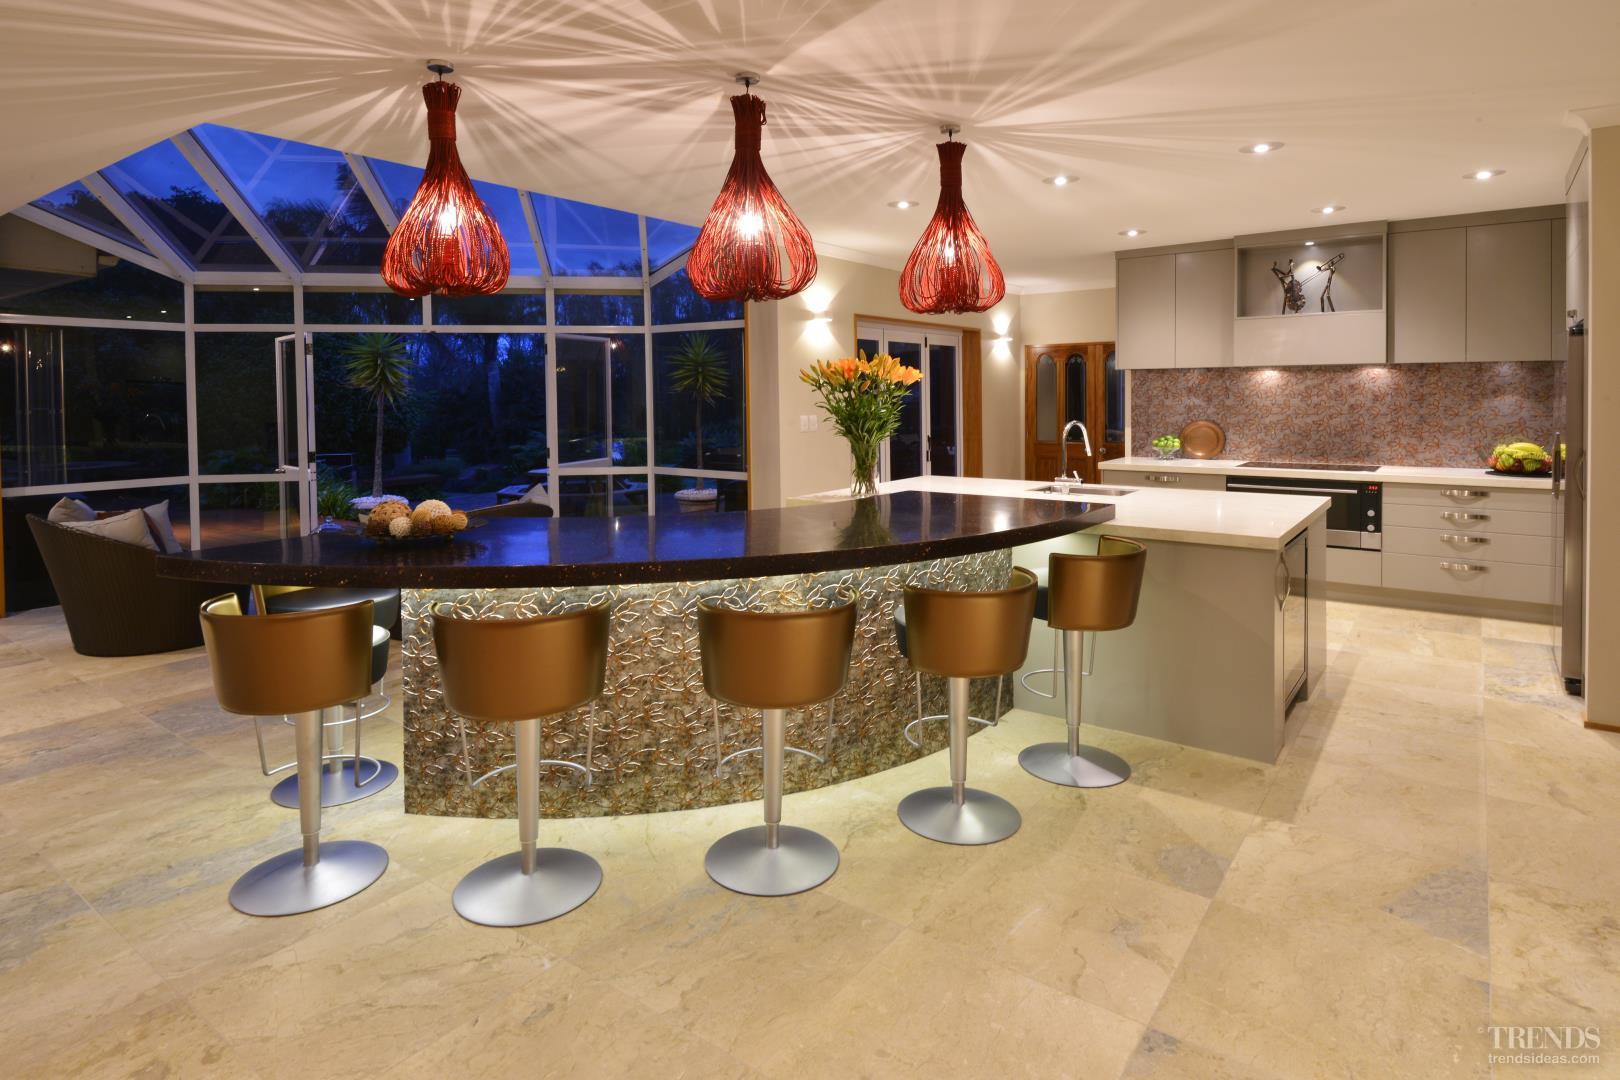 renovated kitchen with metallic curved island front and patterned renovated kitchen with metallic curved island front and patterned glass splashback